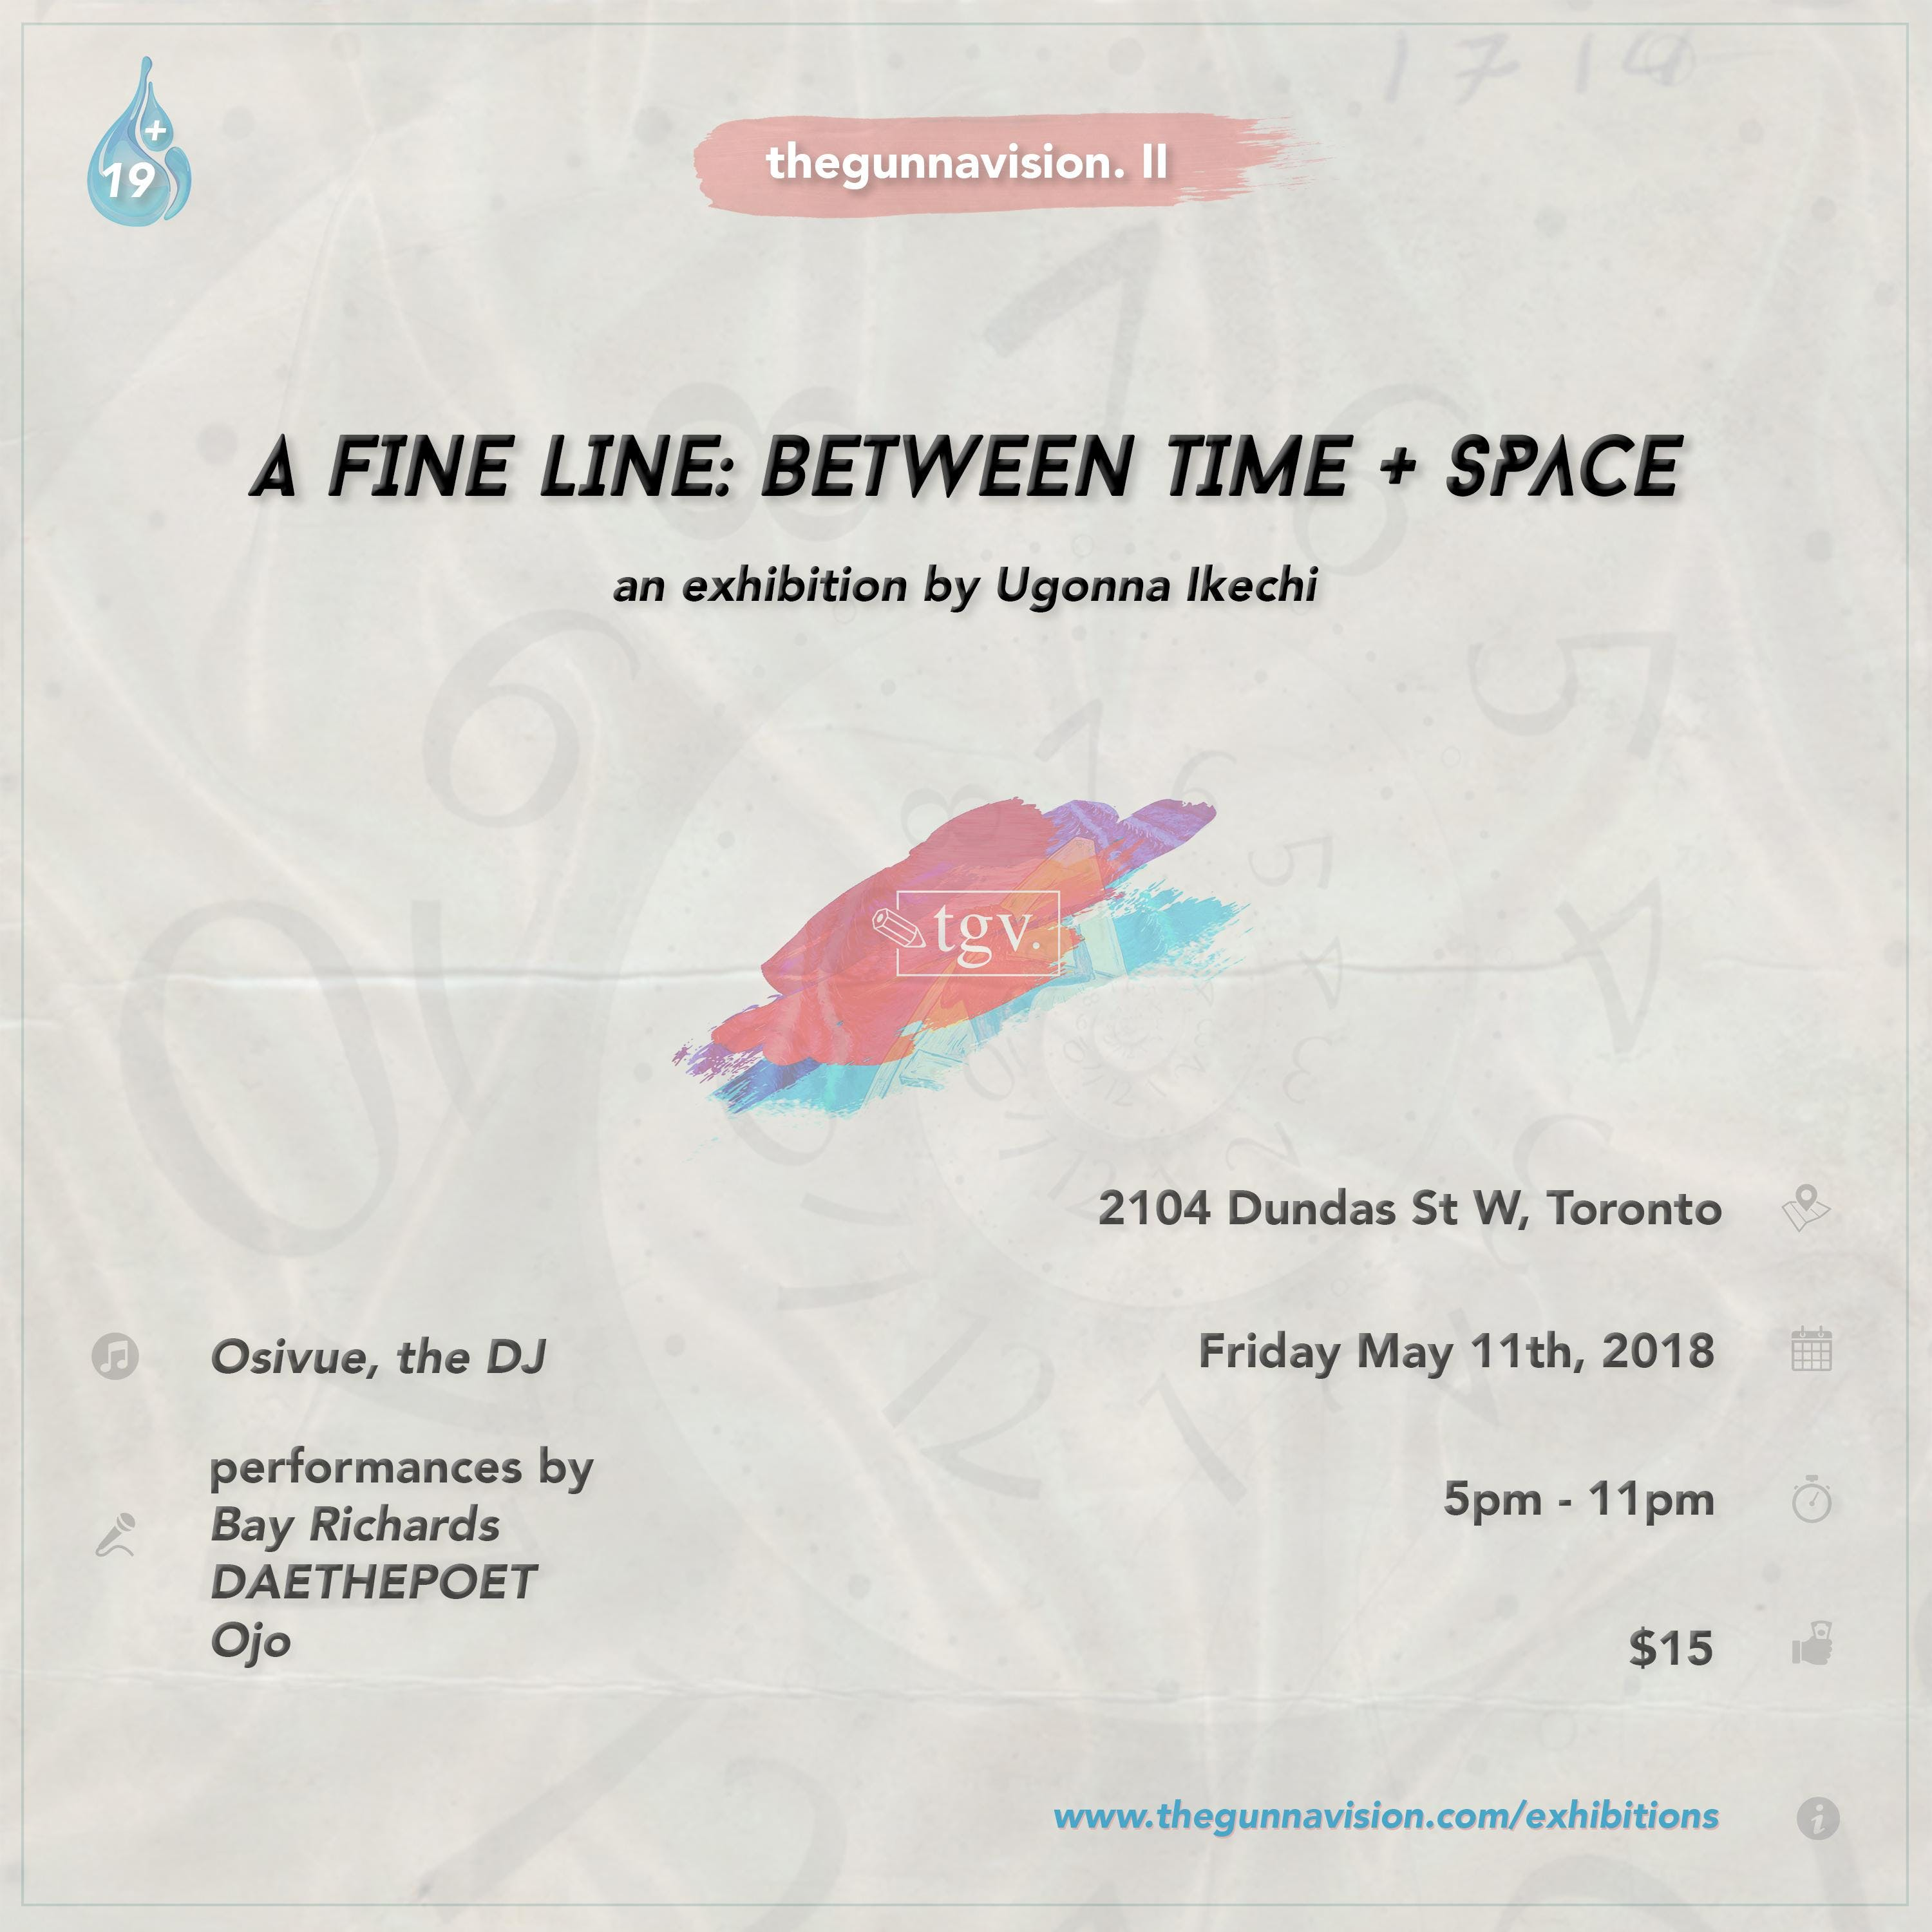 A FINE LINE: BETWEEN TIME + SPACE